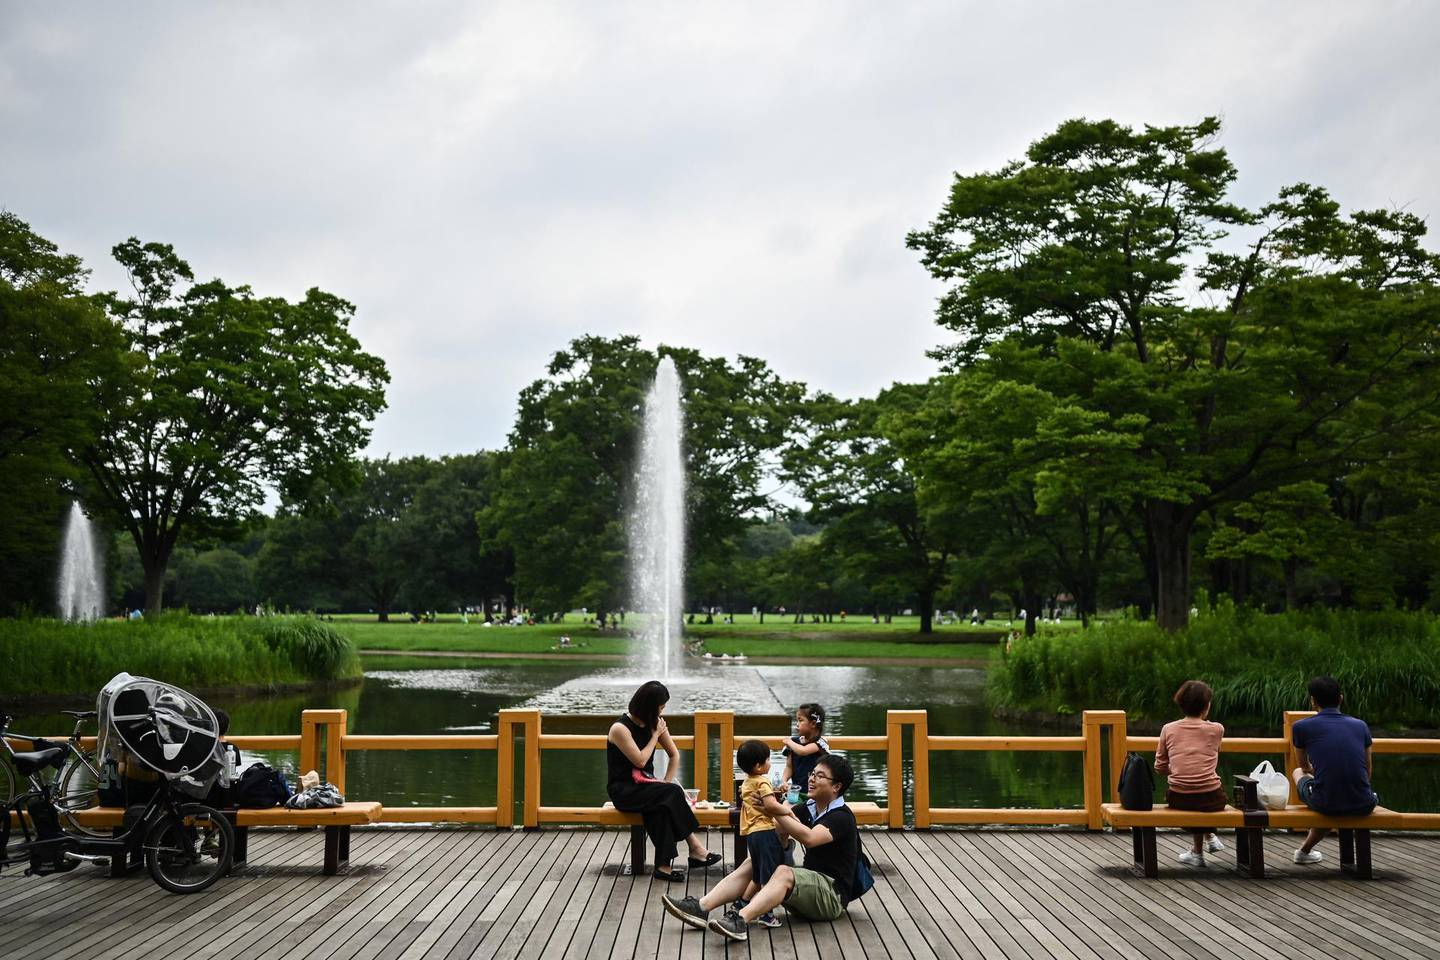 A woman and a child interact at Yoyogi Park in Tokyo on July 24, 2020. (Photo by Charly TRIBALLEAU / AFP)